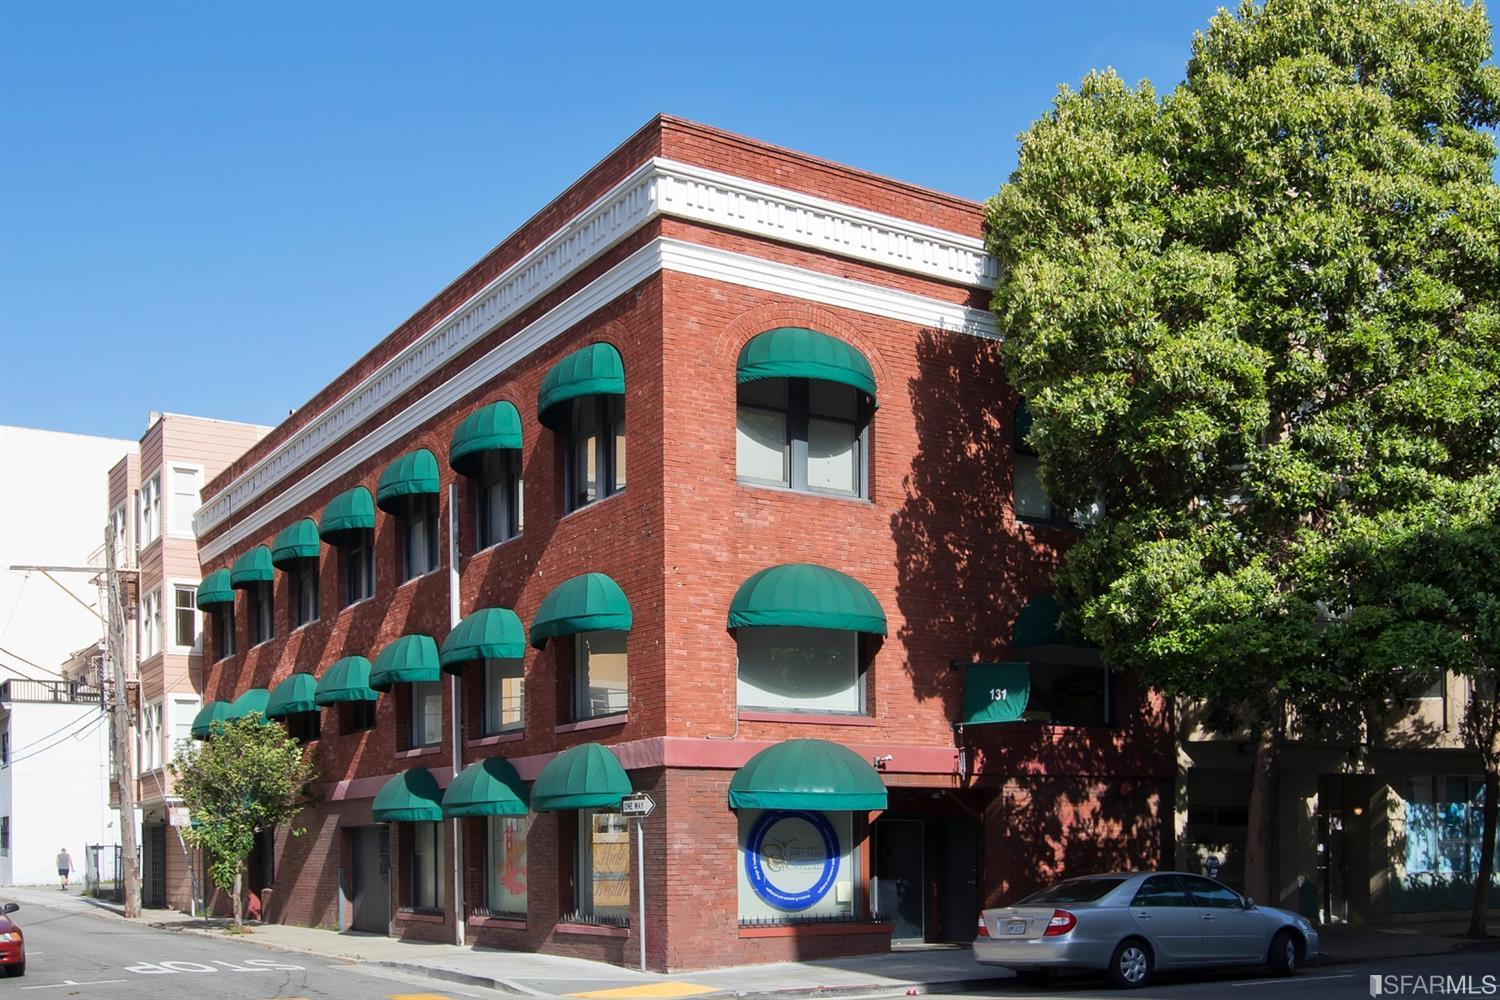 Compass Commercial is proud to present the opportunity to acquire the 100% fee simple interest in 131 Franklin Street, in San Francisco's highly coveted Hayes Valley District. 131 Franklin Street consists of approximately 9,580 square feet across three floors and includes a fully finished ground level. 131 Franklin is located on the northwest corner of Franklin Street and Hickory Street in the very desirable Hayes Valley Neighborhood of San Francisco. 131 Franklin Street is in close proximity to public transportation and is located on the highly trafficked Franklin Street which provides significant brand visibility.